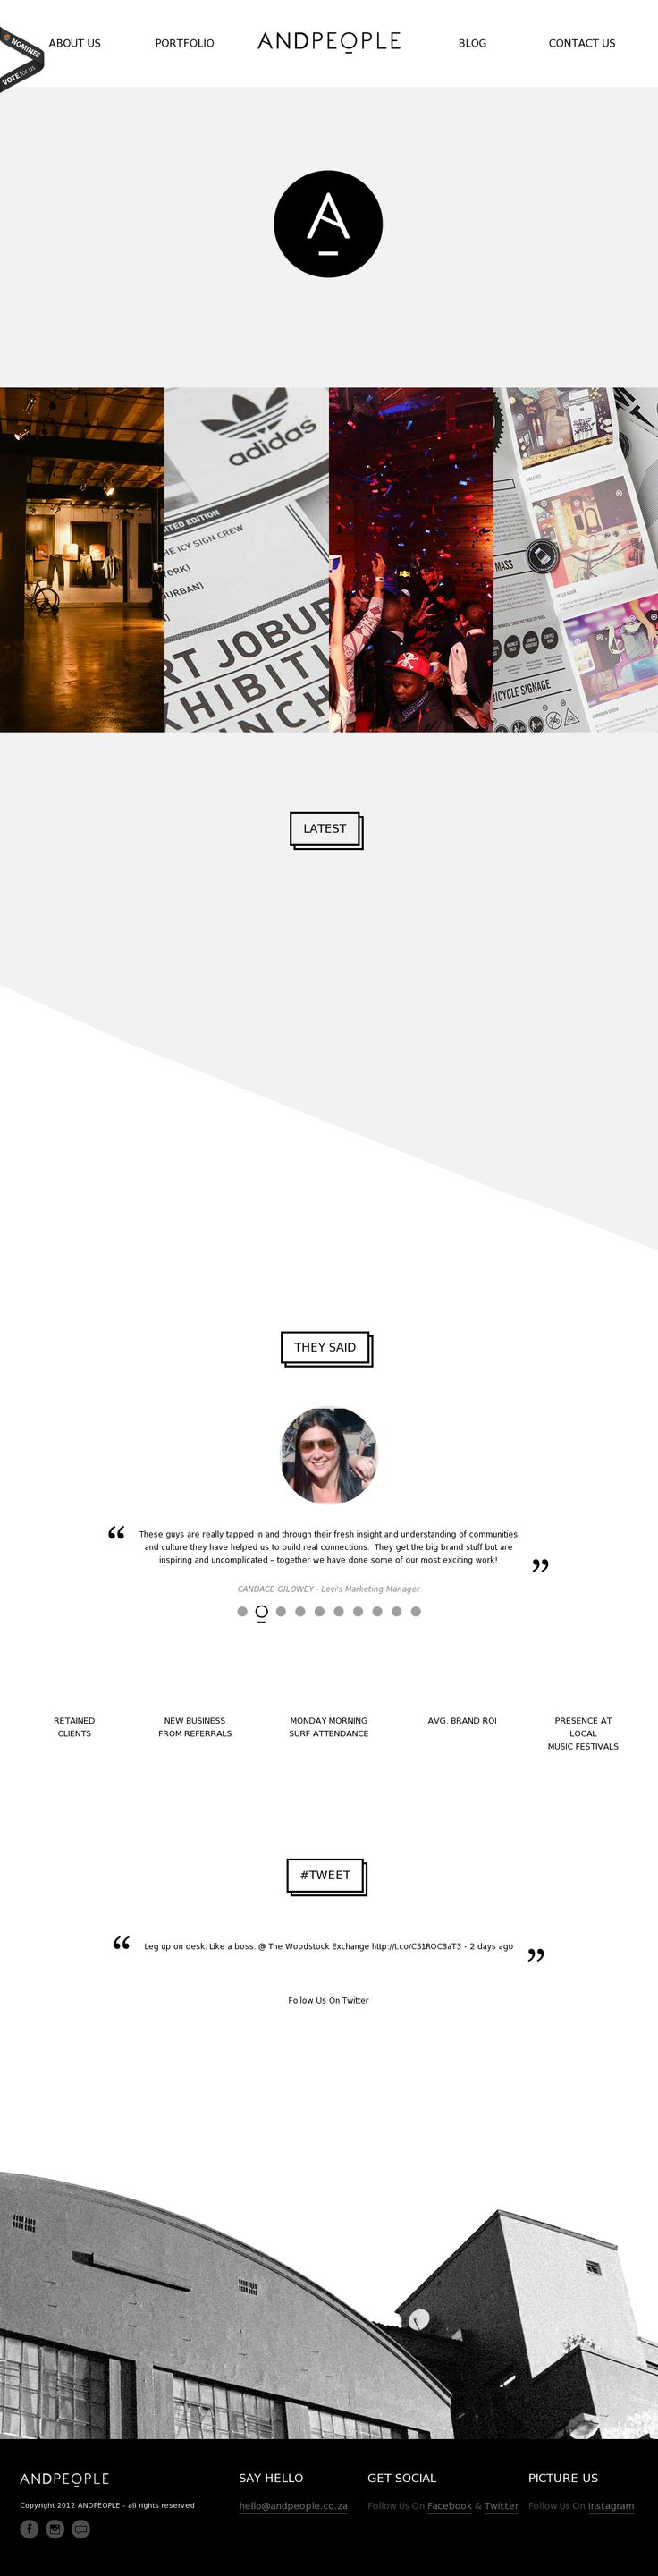 Very Simple site or landing page design inspiration. Sleek, modern, and high class design.